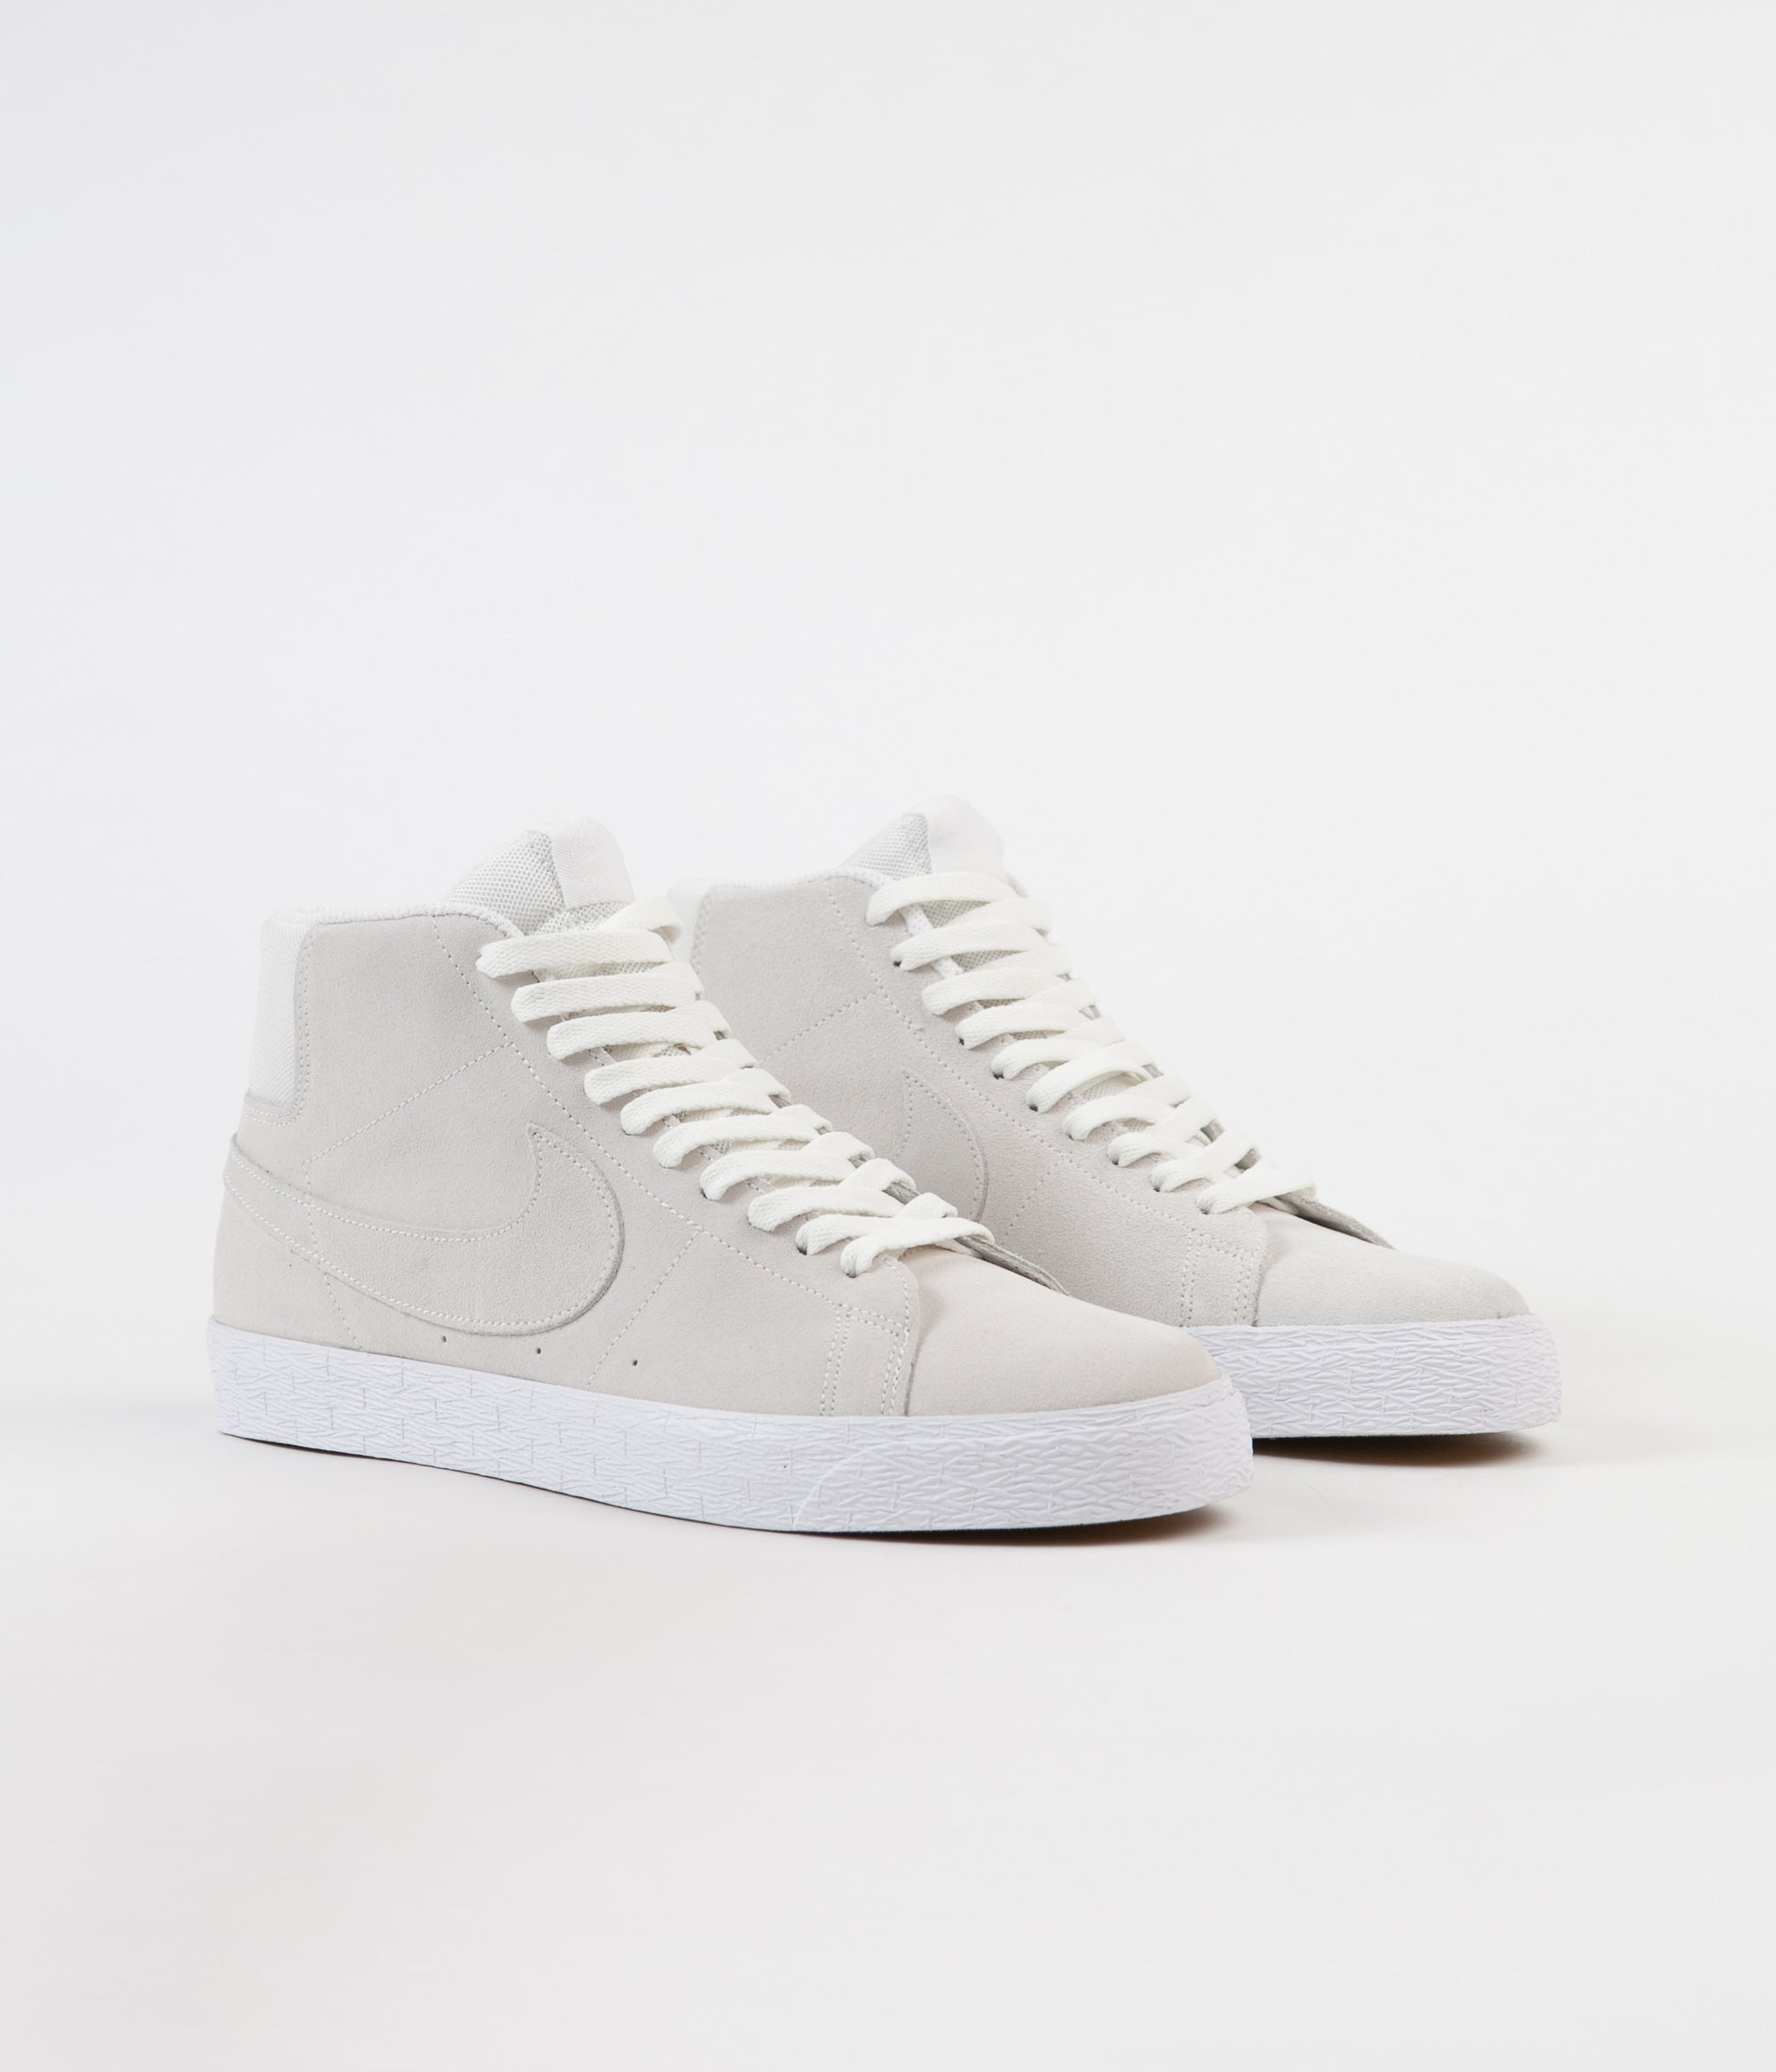 Nike SB Blazer Mid Deconstructed Shoes - Summit White / Summit White - White - White